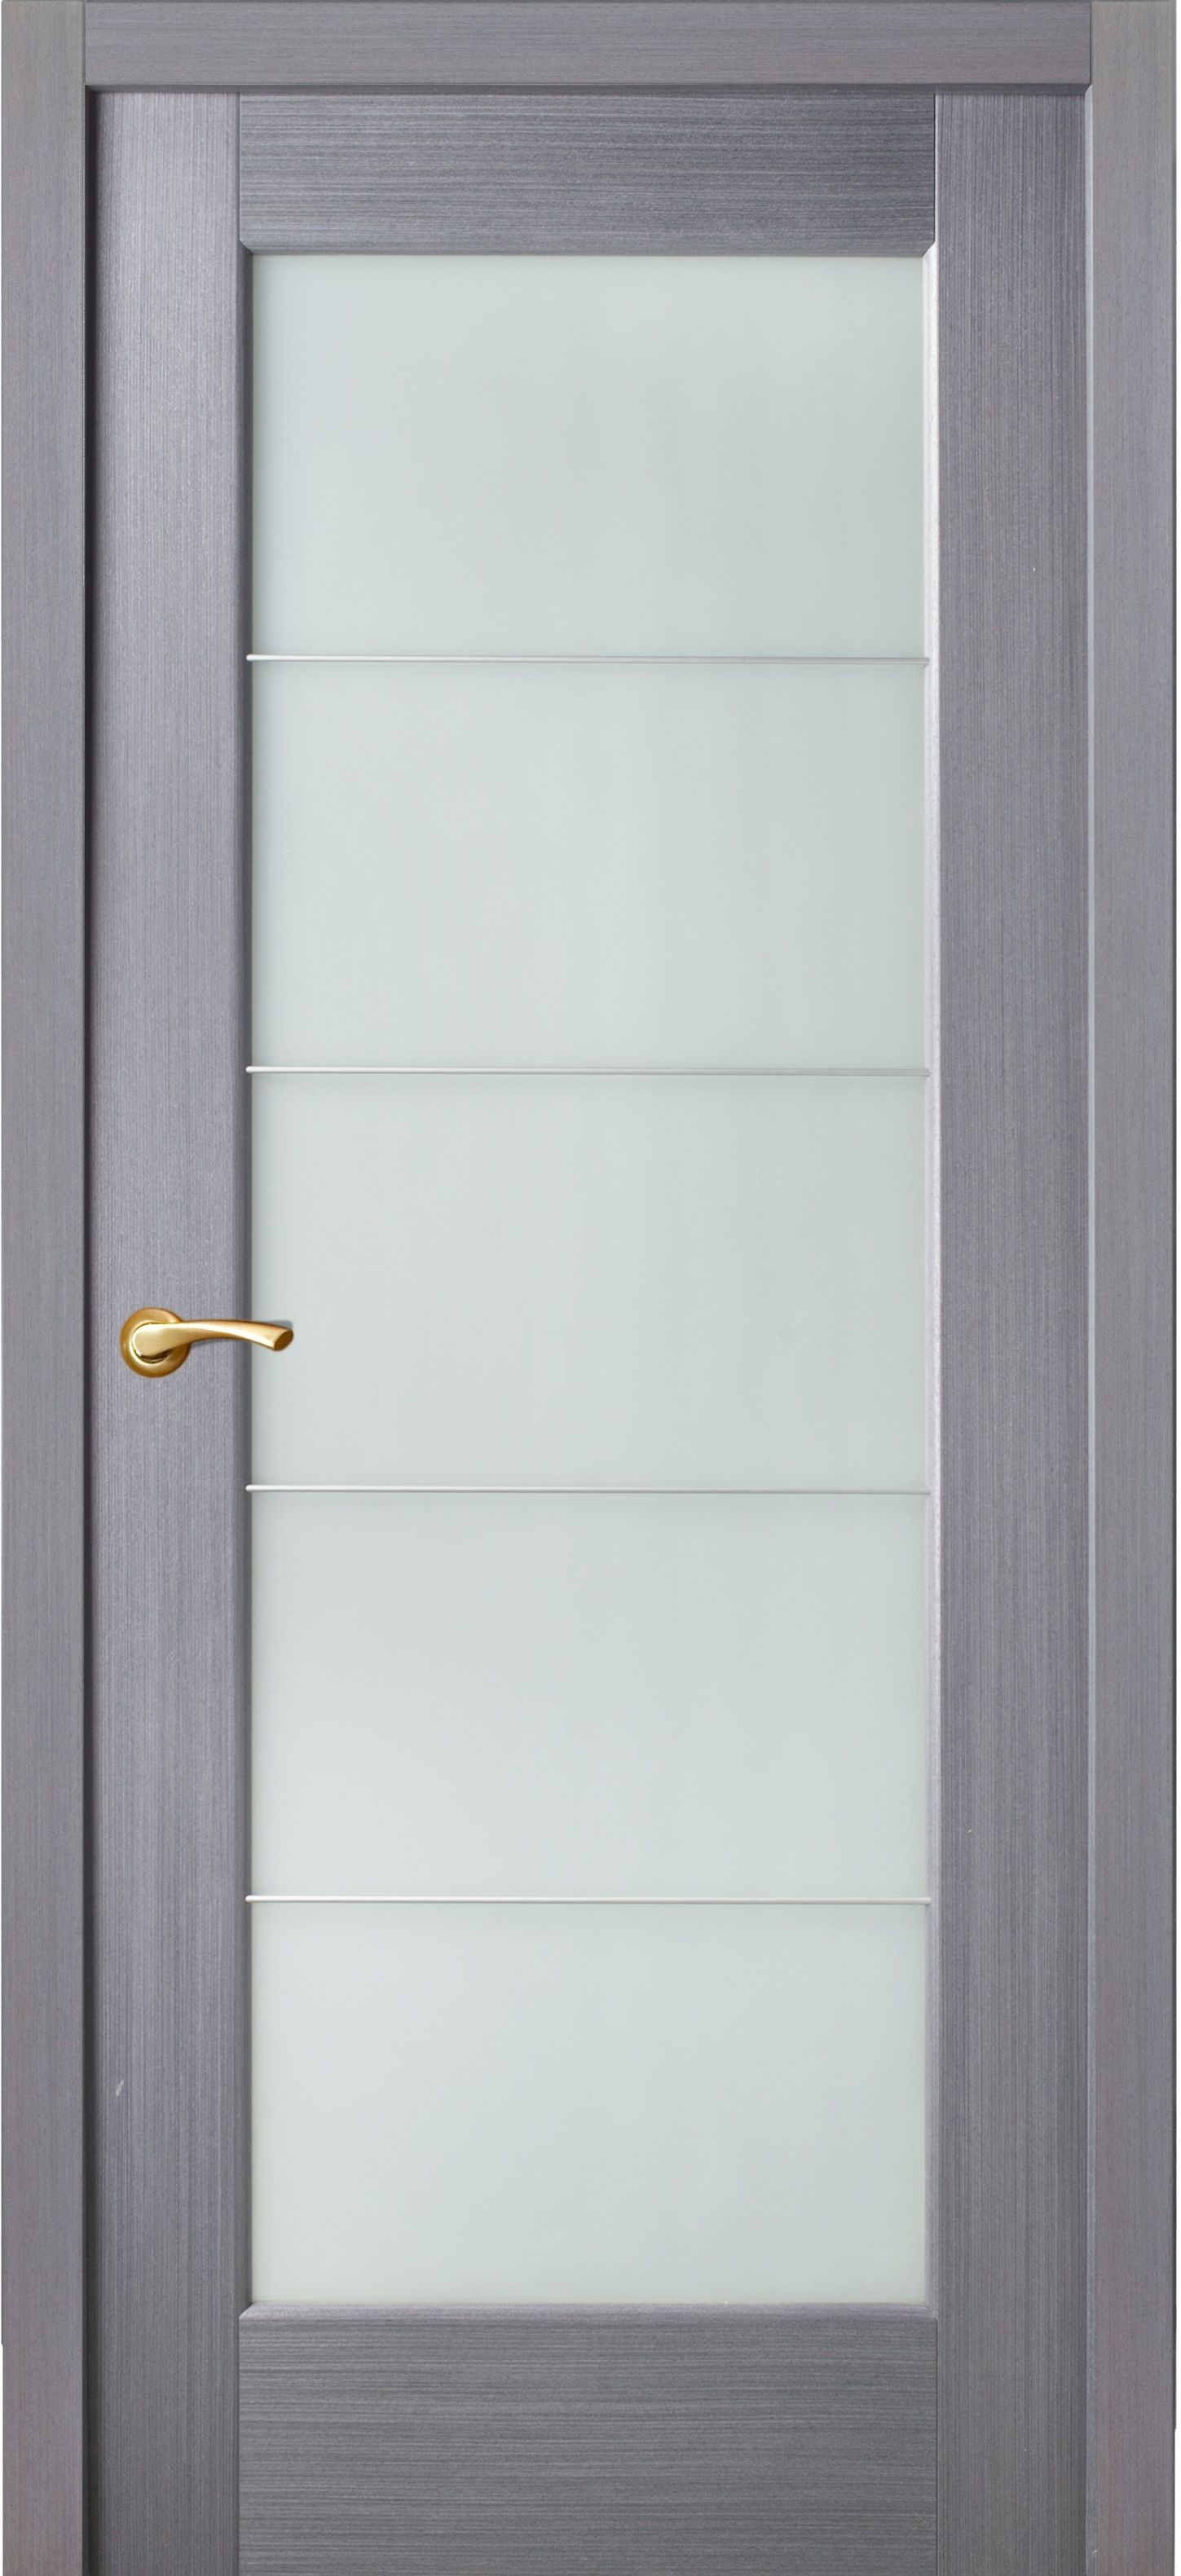 Plastic front doors aylsham windows norfolk front doors for White back door